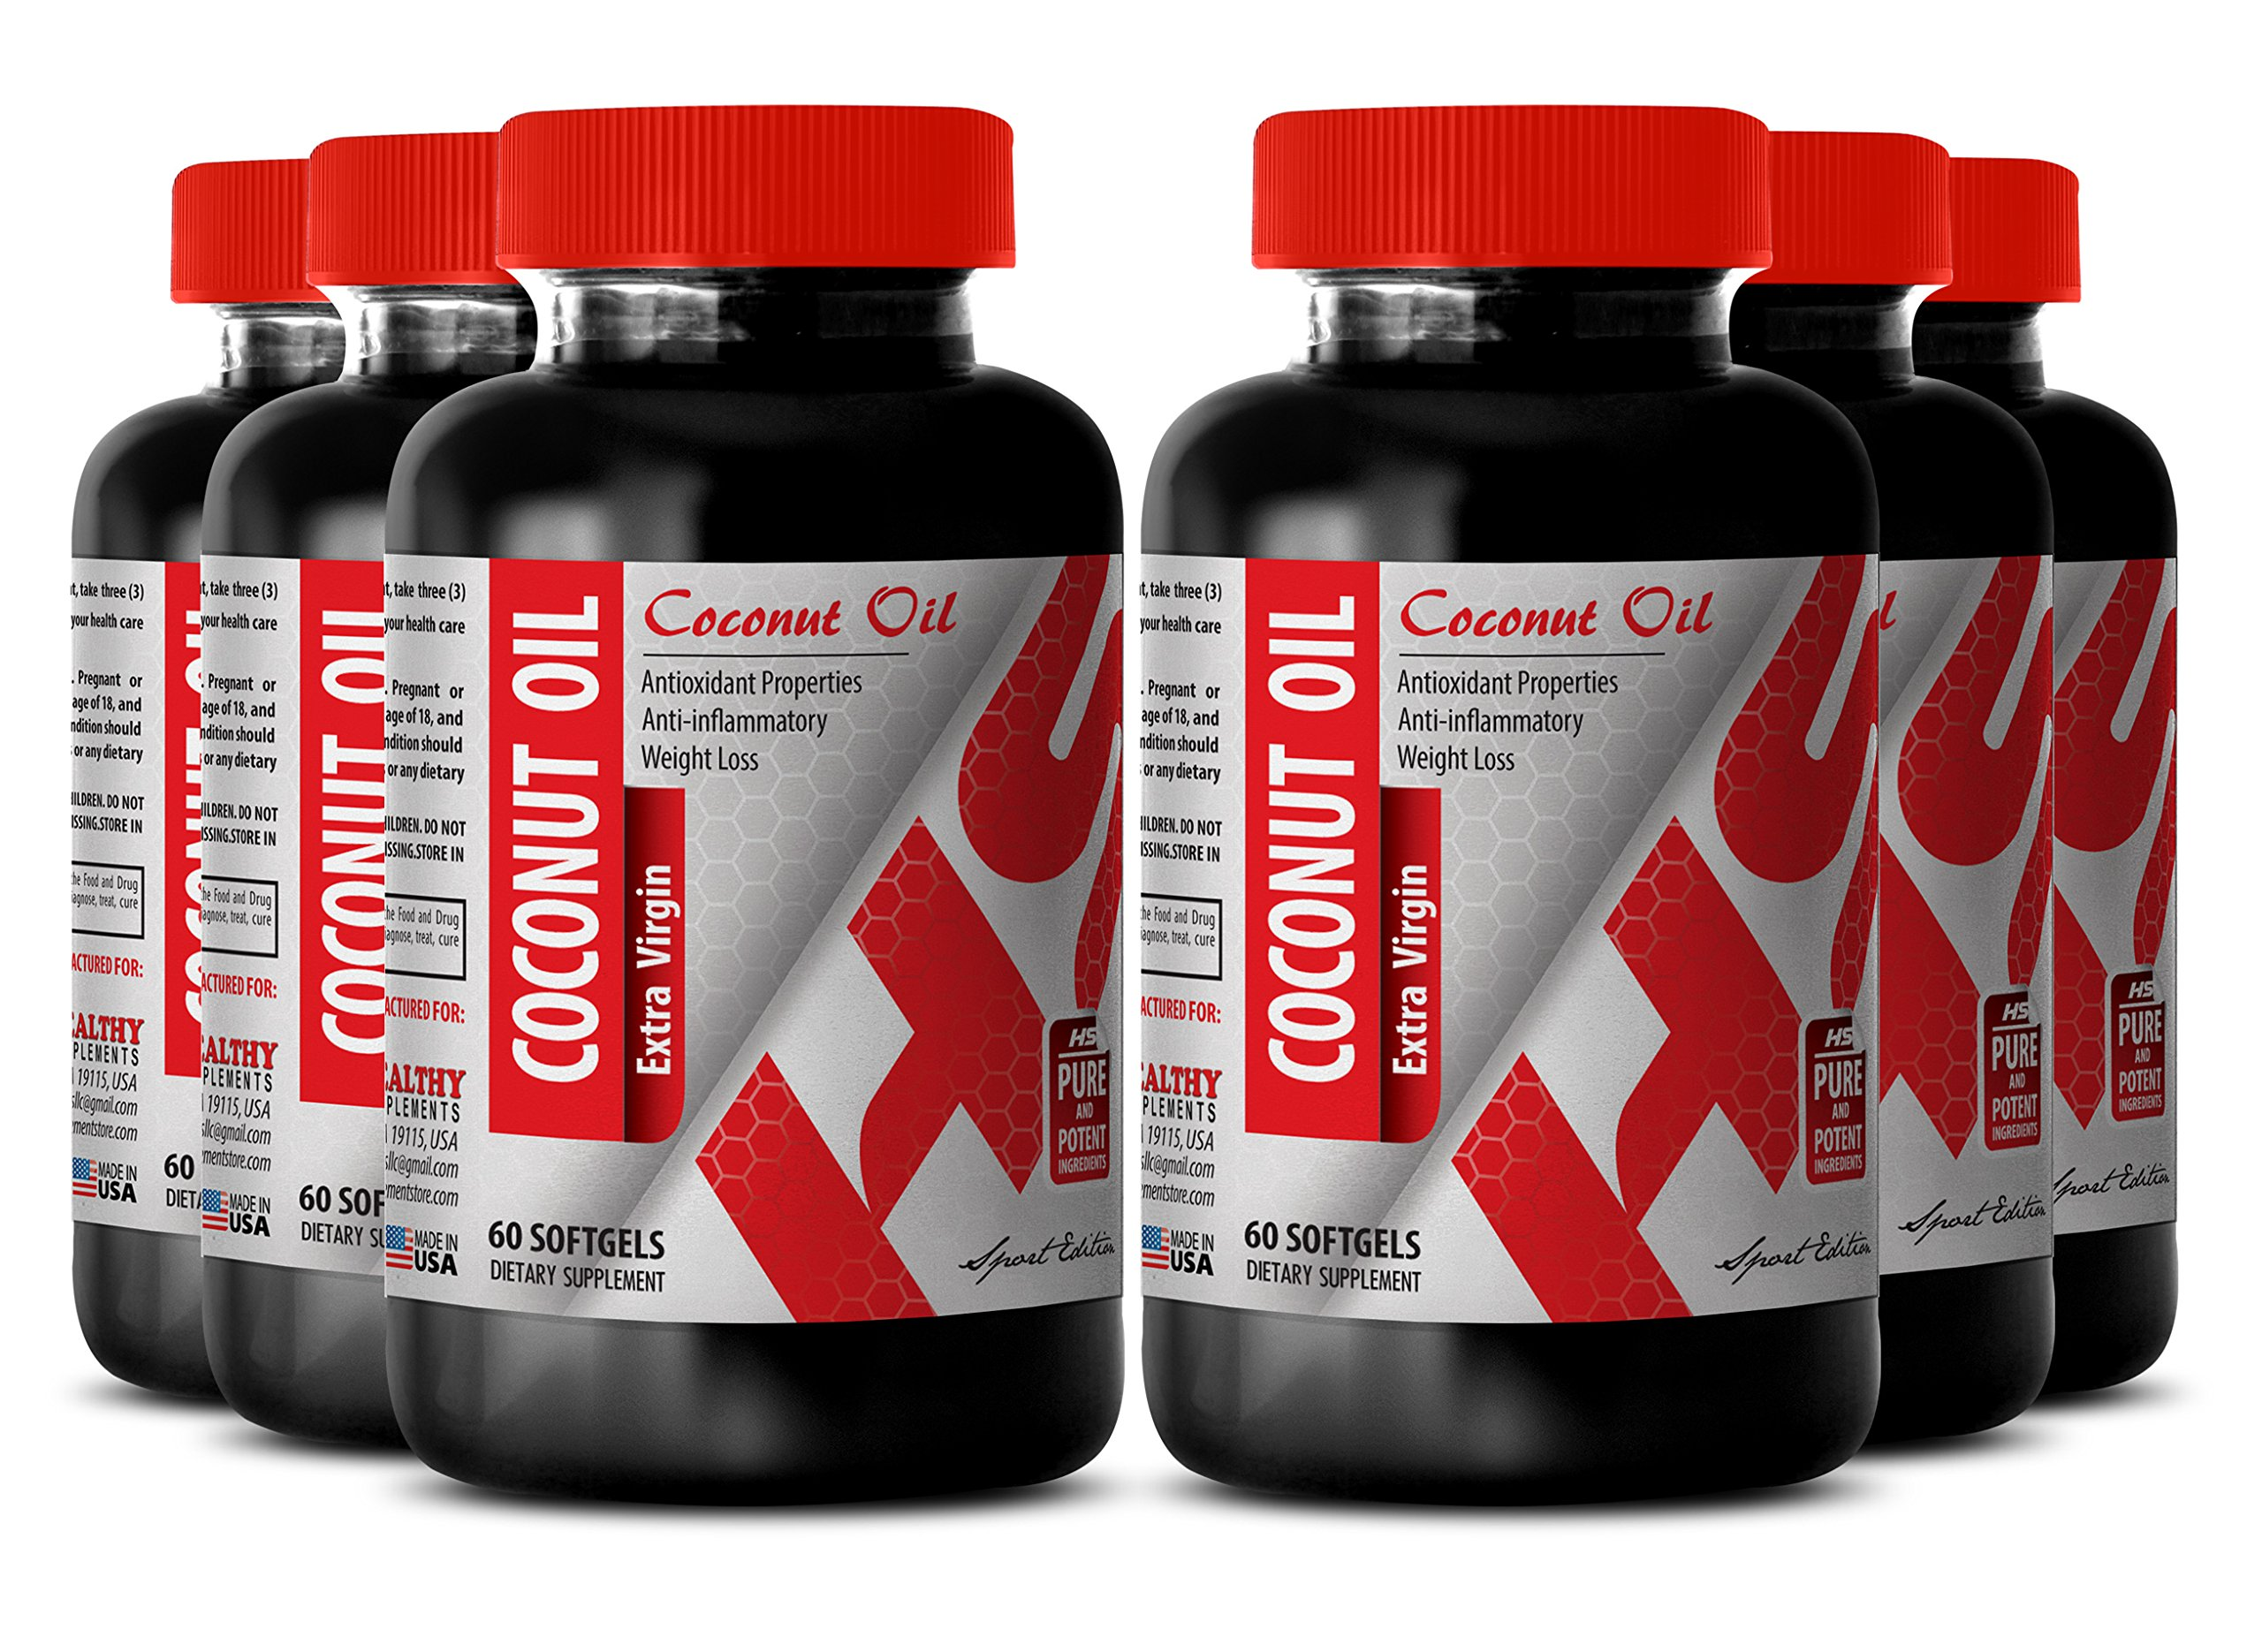 Coconut oil pills organic- PURIFIED COCONUT OIL EXTRA VIRGIN 3000 MG - increase performance (6 Bottles) by Healthy Supplements LLC